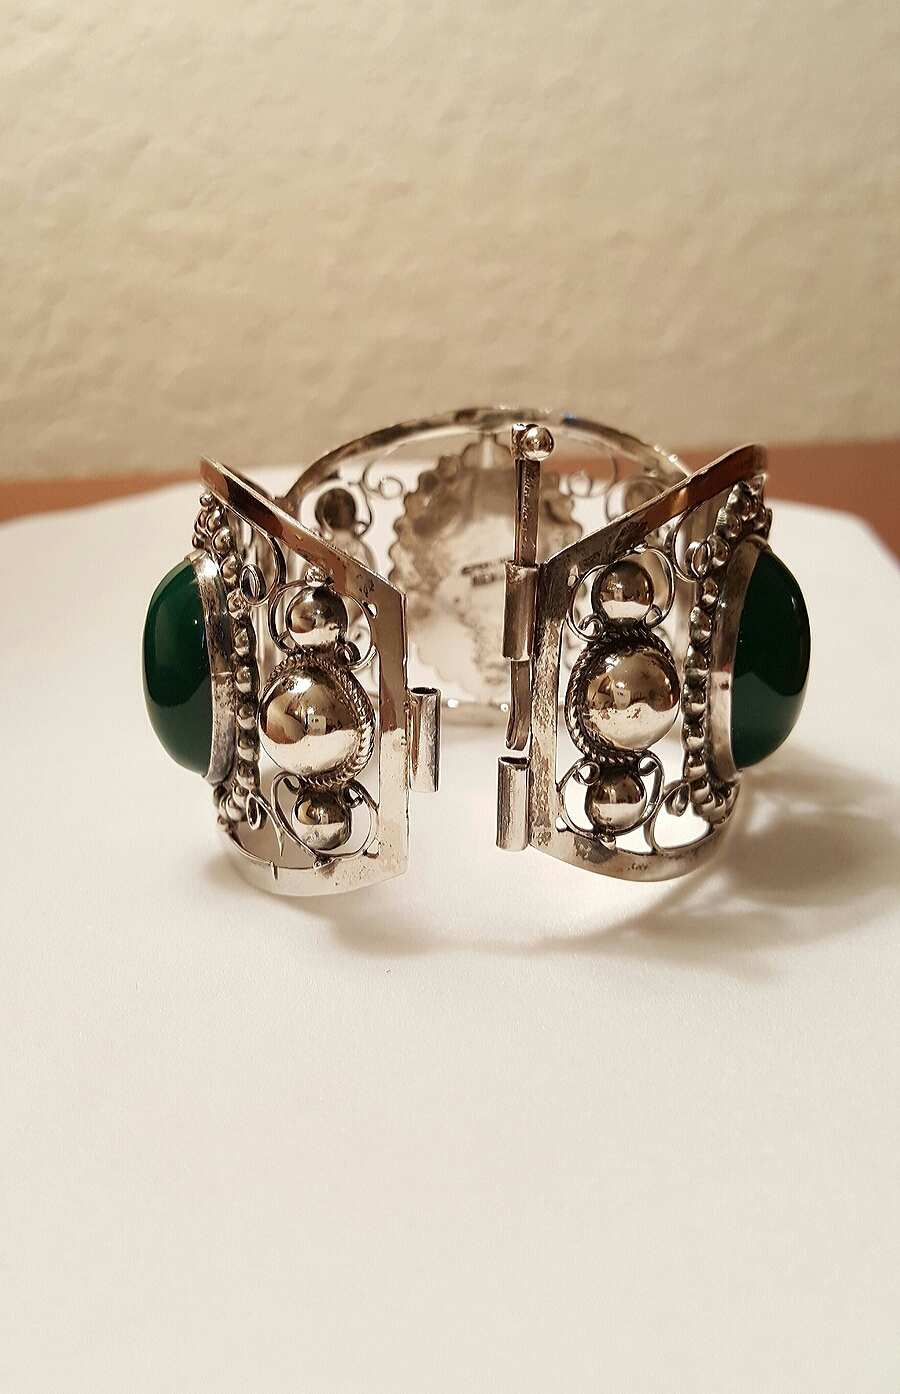 Mexican Green Dyed Onyx Cabochons Hinged Bracelet Sterling Silver Mexico